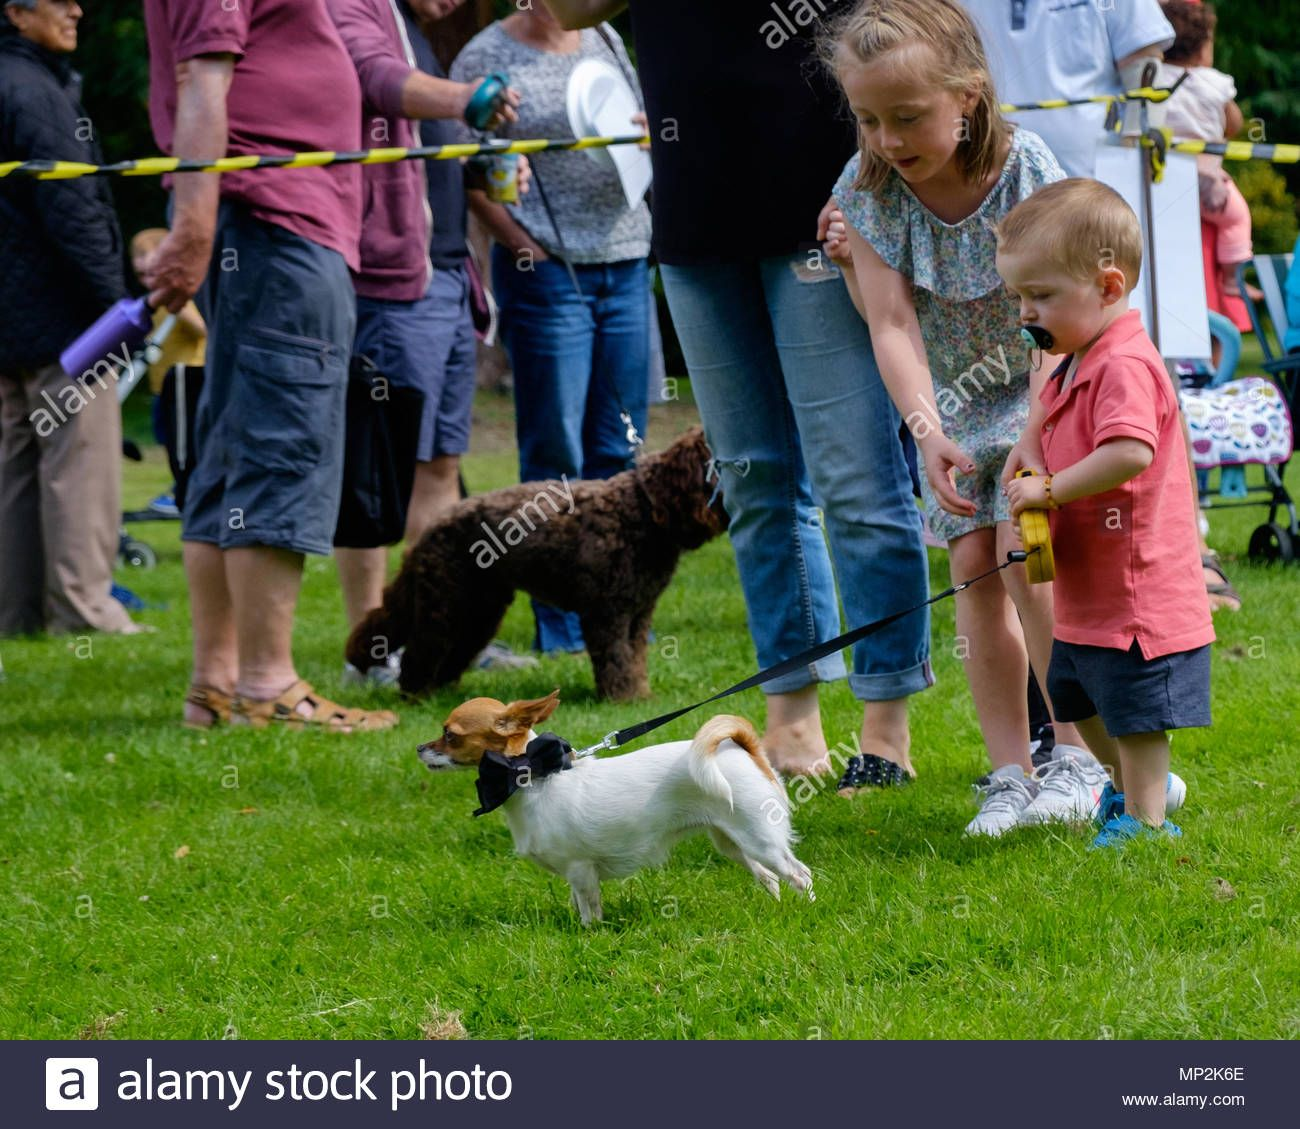 Big Sister Helps Toddler Brother Walk Small White Dog With Bow On Collar At Dog Show In Canons Park Edgware North London A Family Fun Day Dog Show Family Fun